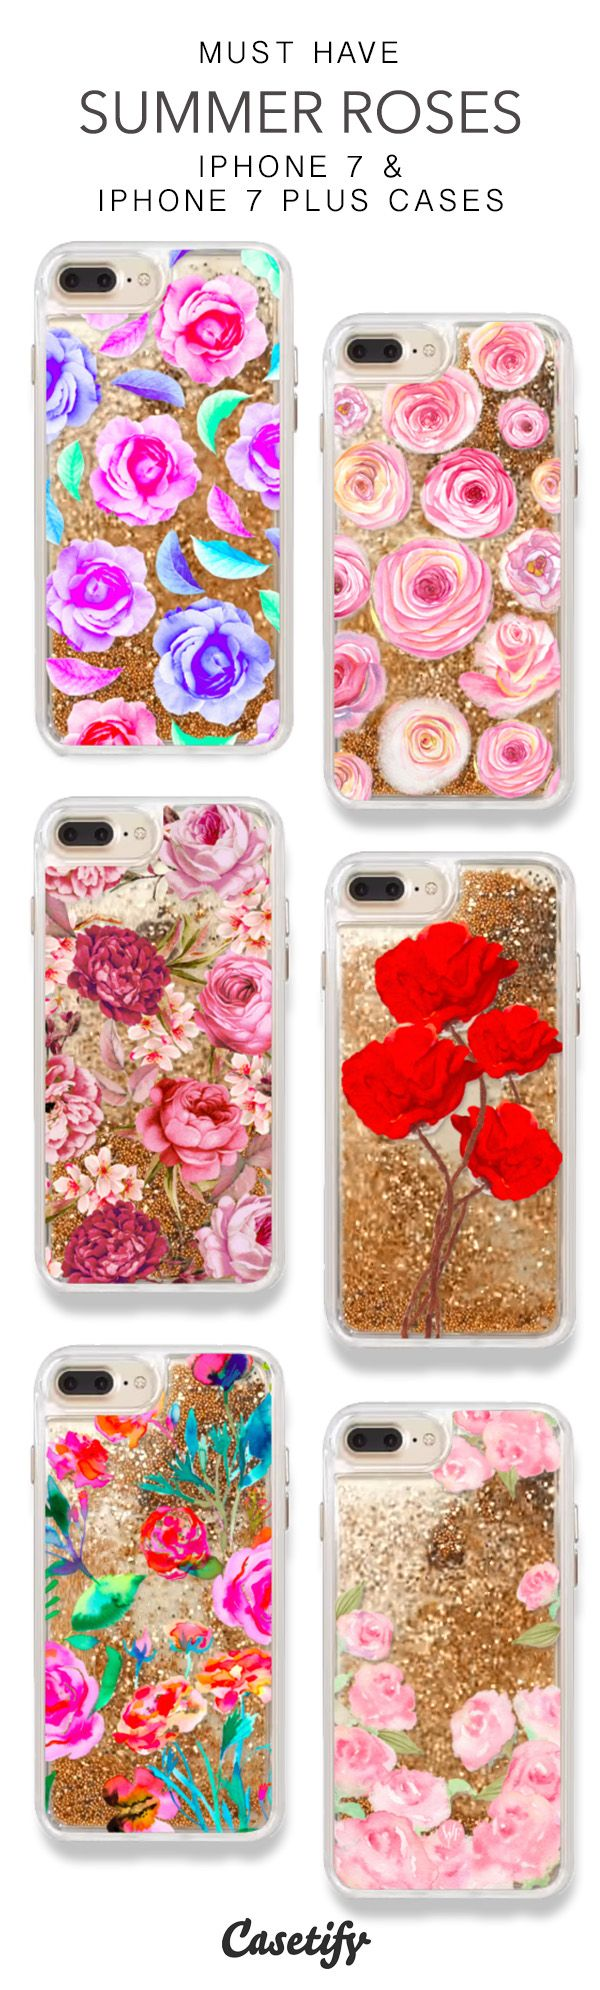 Must Have Summer Roses iPhone 7 Cases & iPhone 7 Plus Cases. More Protective Liquid Glitter Floral iPhone case here > https://www.casetify.com/en_US/collections/iphone-7-glitter-cases#/?vc=DIwB92anhb